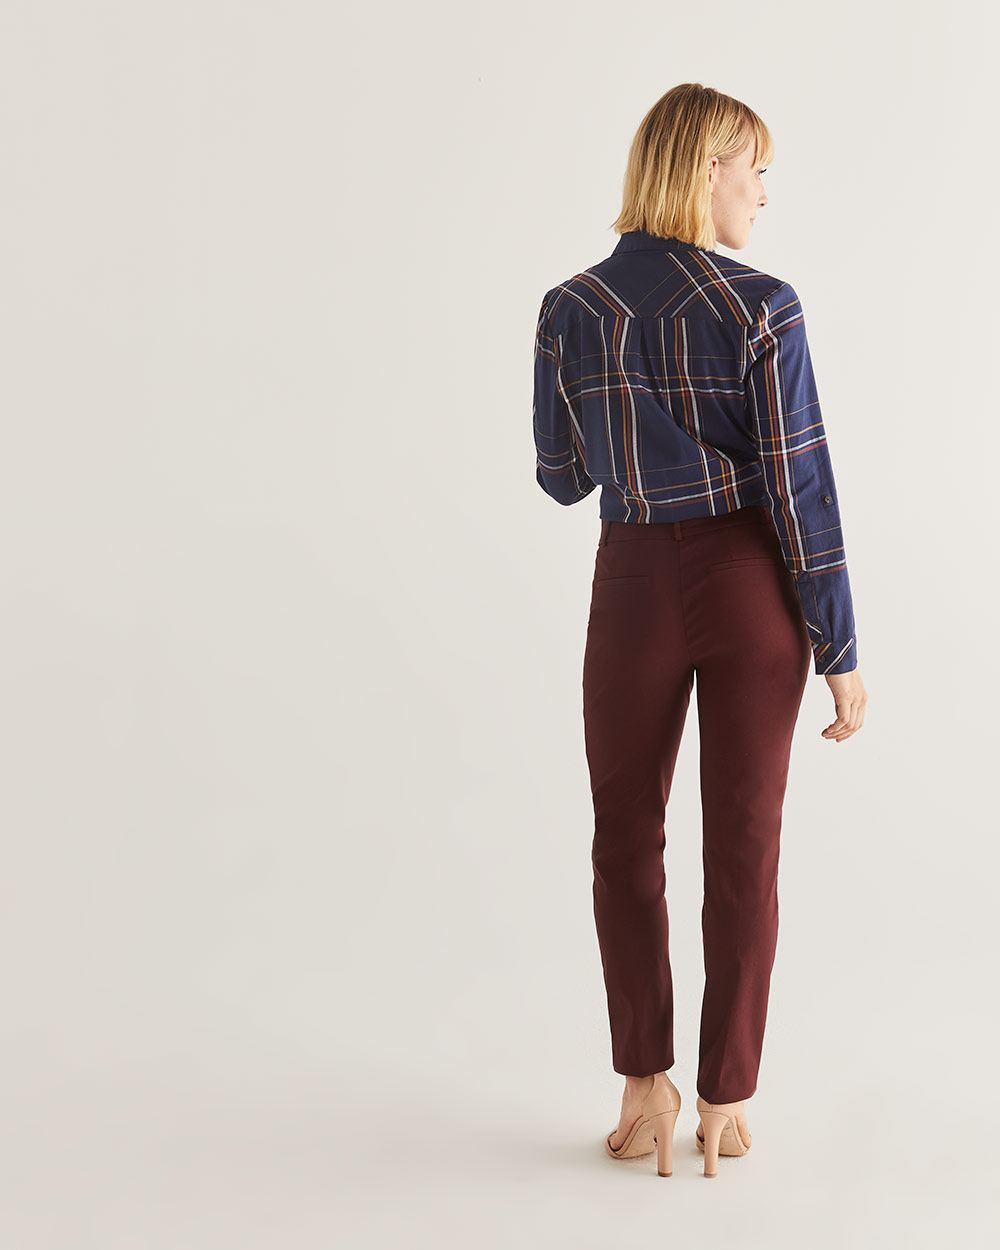 The Iconic Straight Leg Coloured Pull-On Pants - Tall